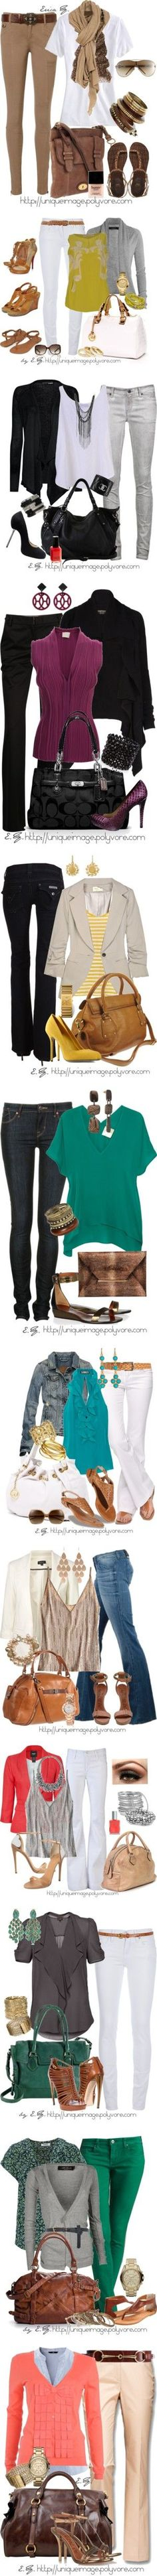 outfits - love!: